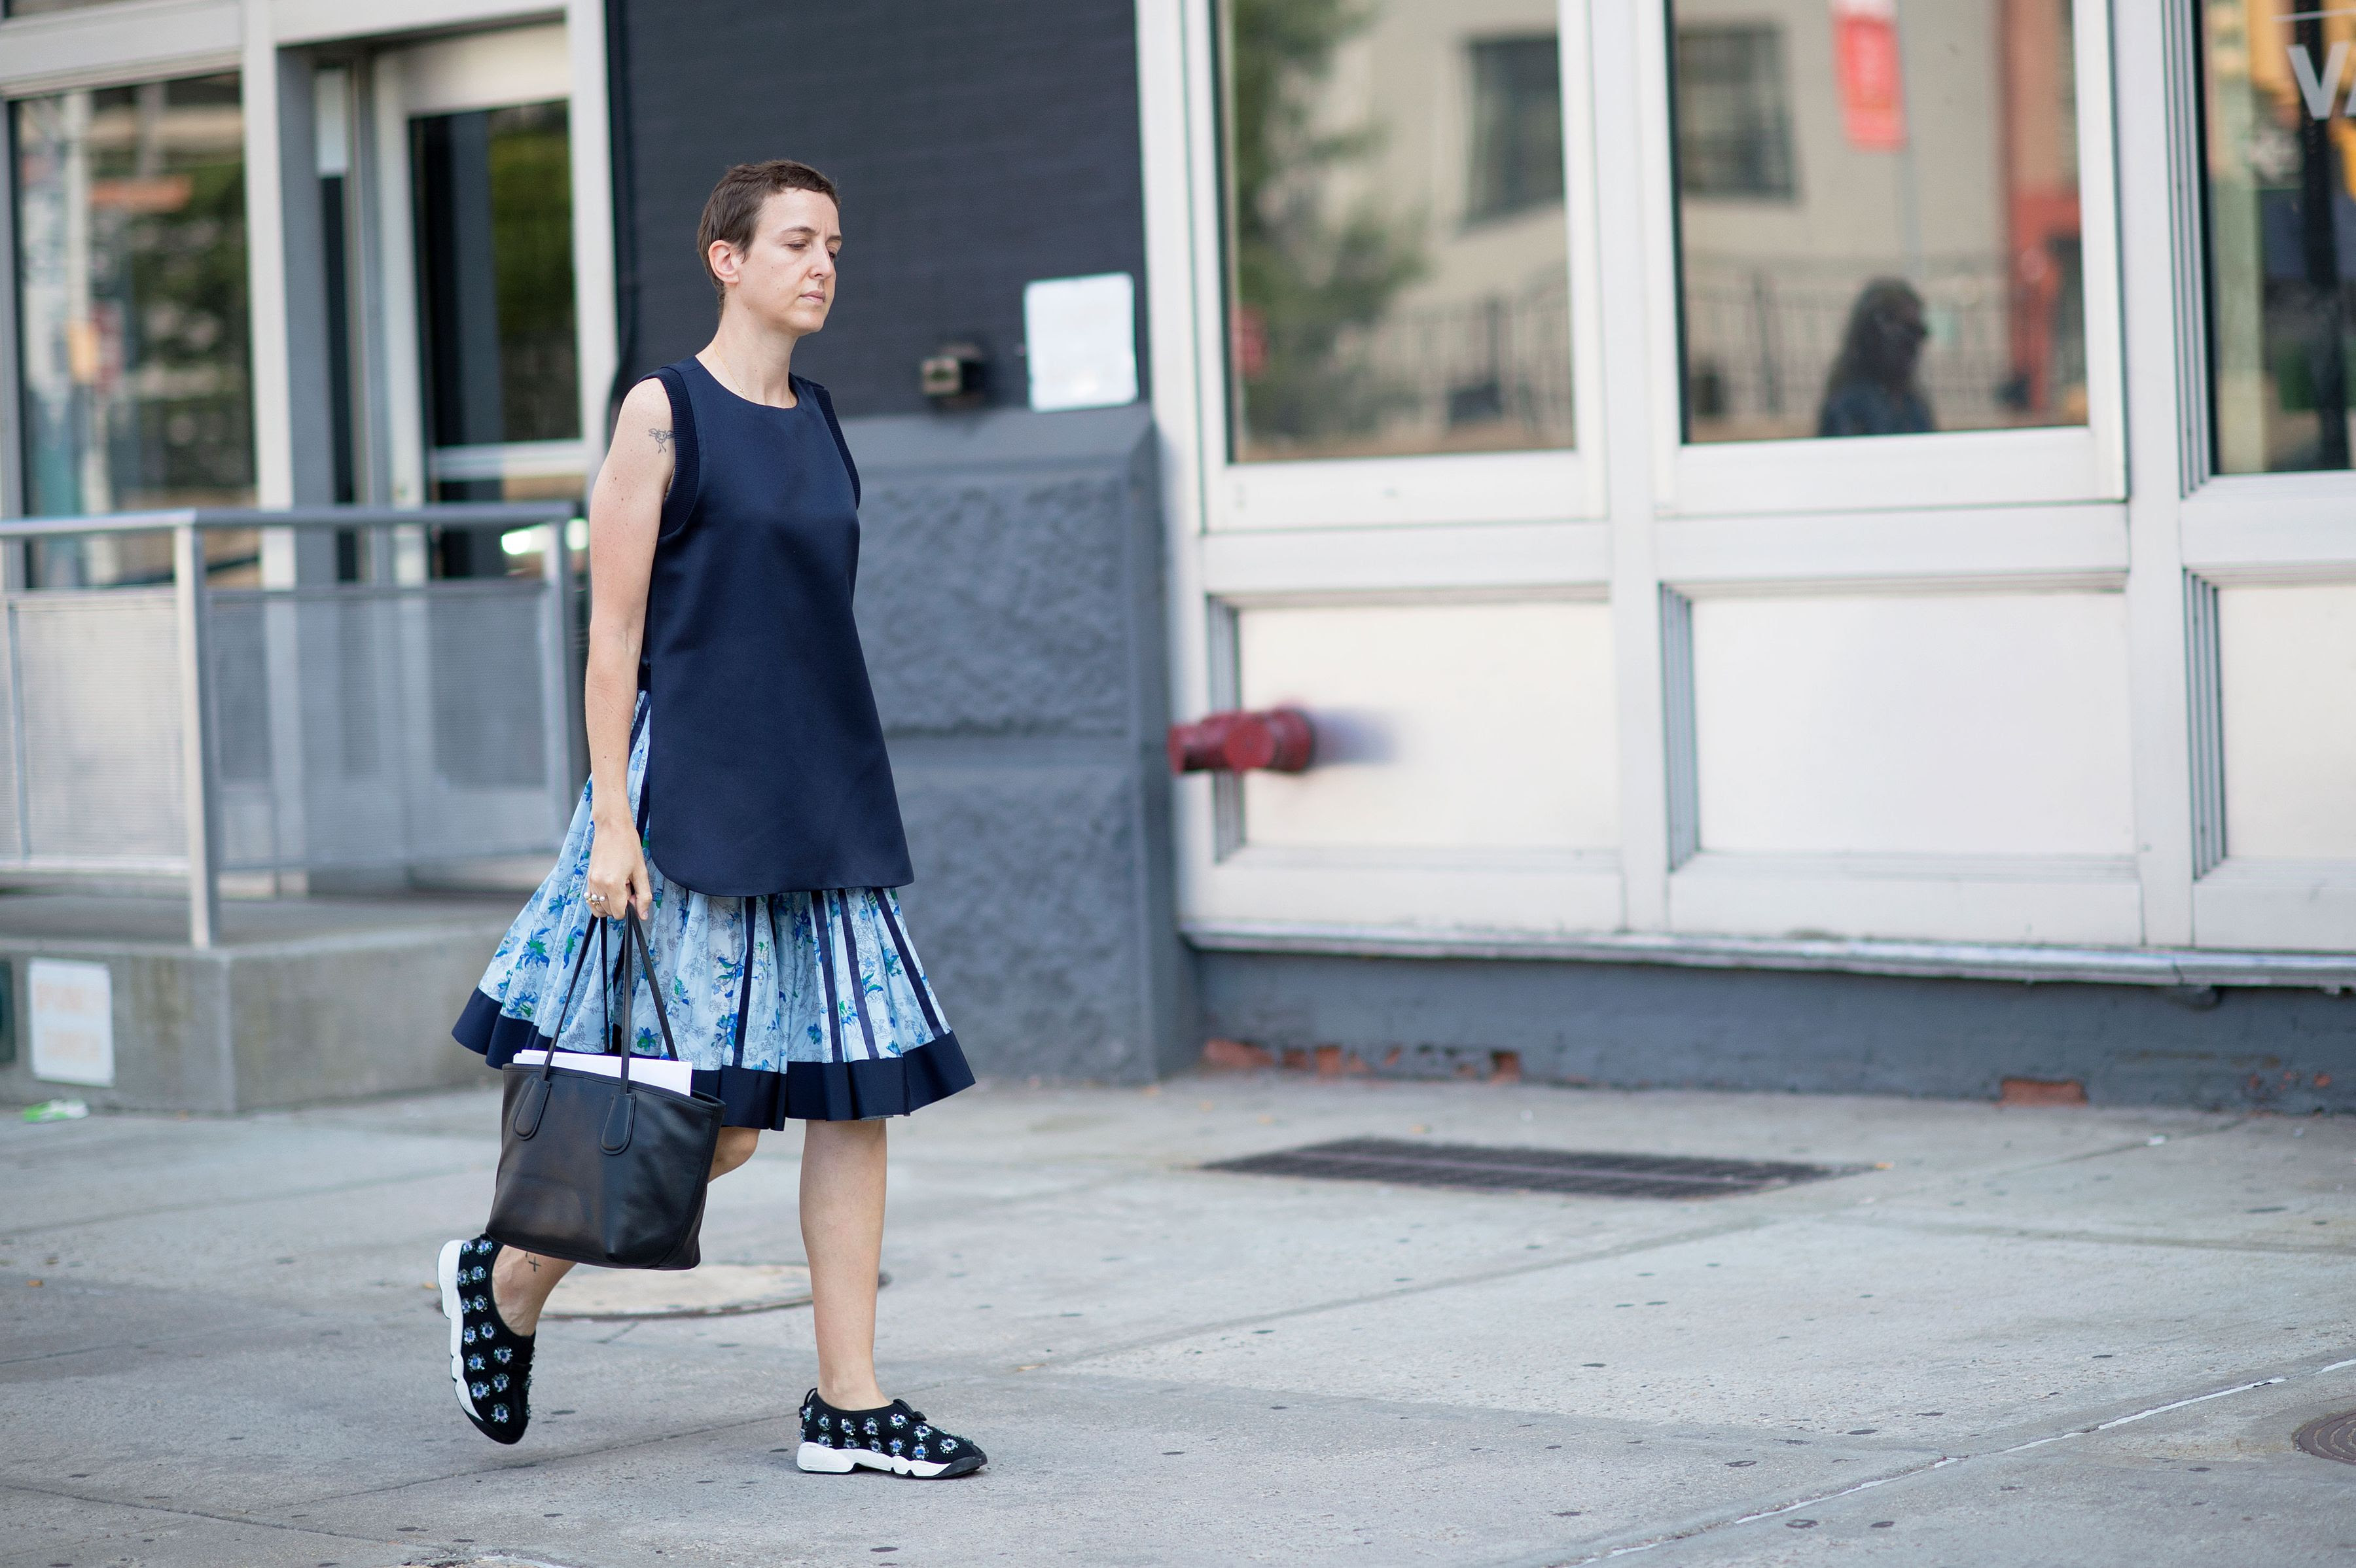 http://pixel.nymag.com/imgs/thecut/slideshows/2014/9/street-style-0907/street-style-13.nocrop.w1800.h1330.2x.jpg